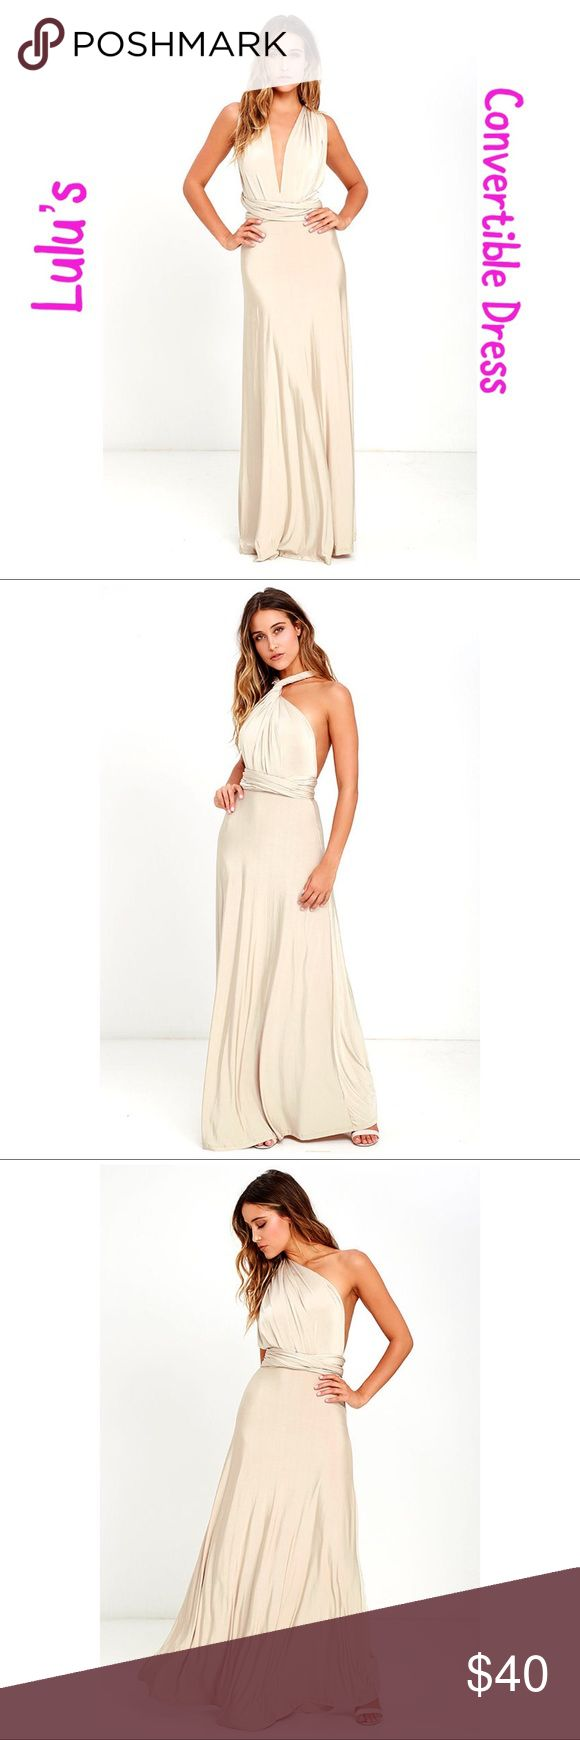 """Always Stunning Convertible Beige Maxi Dress Bought for a wedding and ending up not wearing it. Amazing versatile dress. Two, 83"""" long lengths of fabric sprout from an elastic waistband and wrap into dozens of possible bodice styles. Stretchy beige fabric has a satiny sheen. Linen to mid-thigh. Brand new! Lulu's Dresses Maxi"""